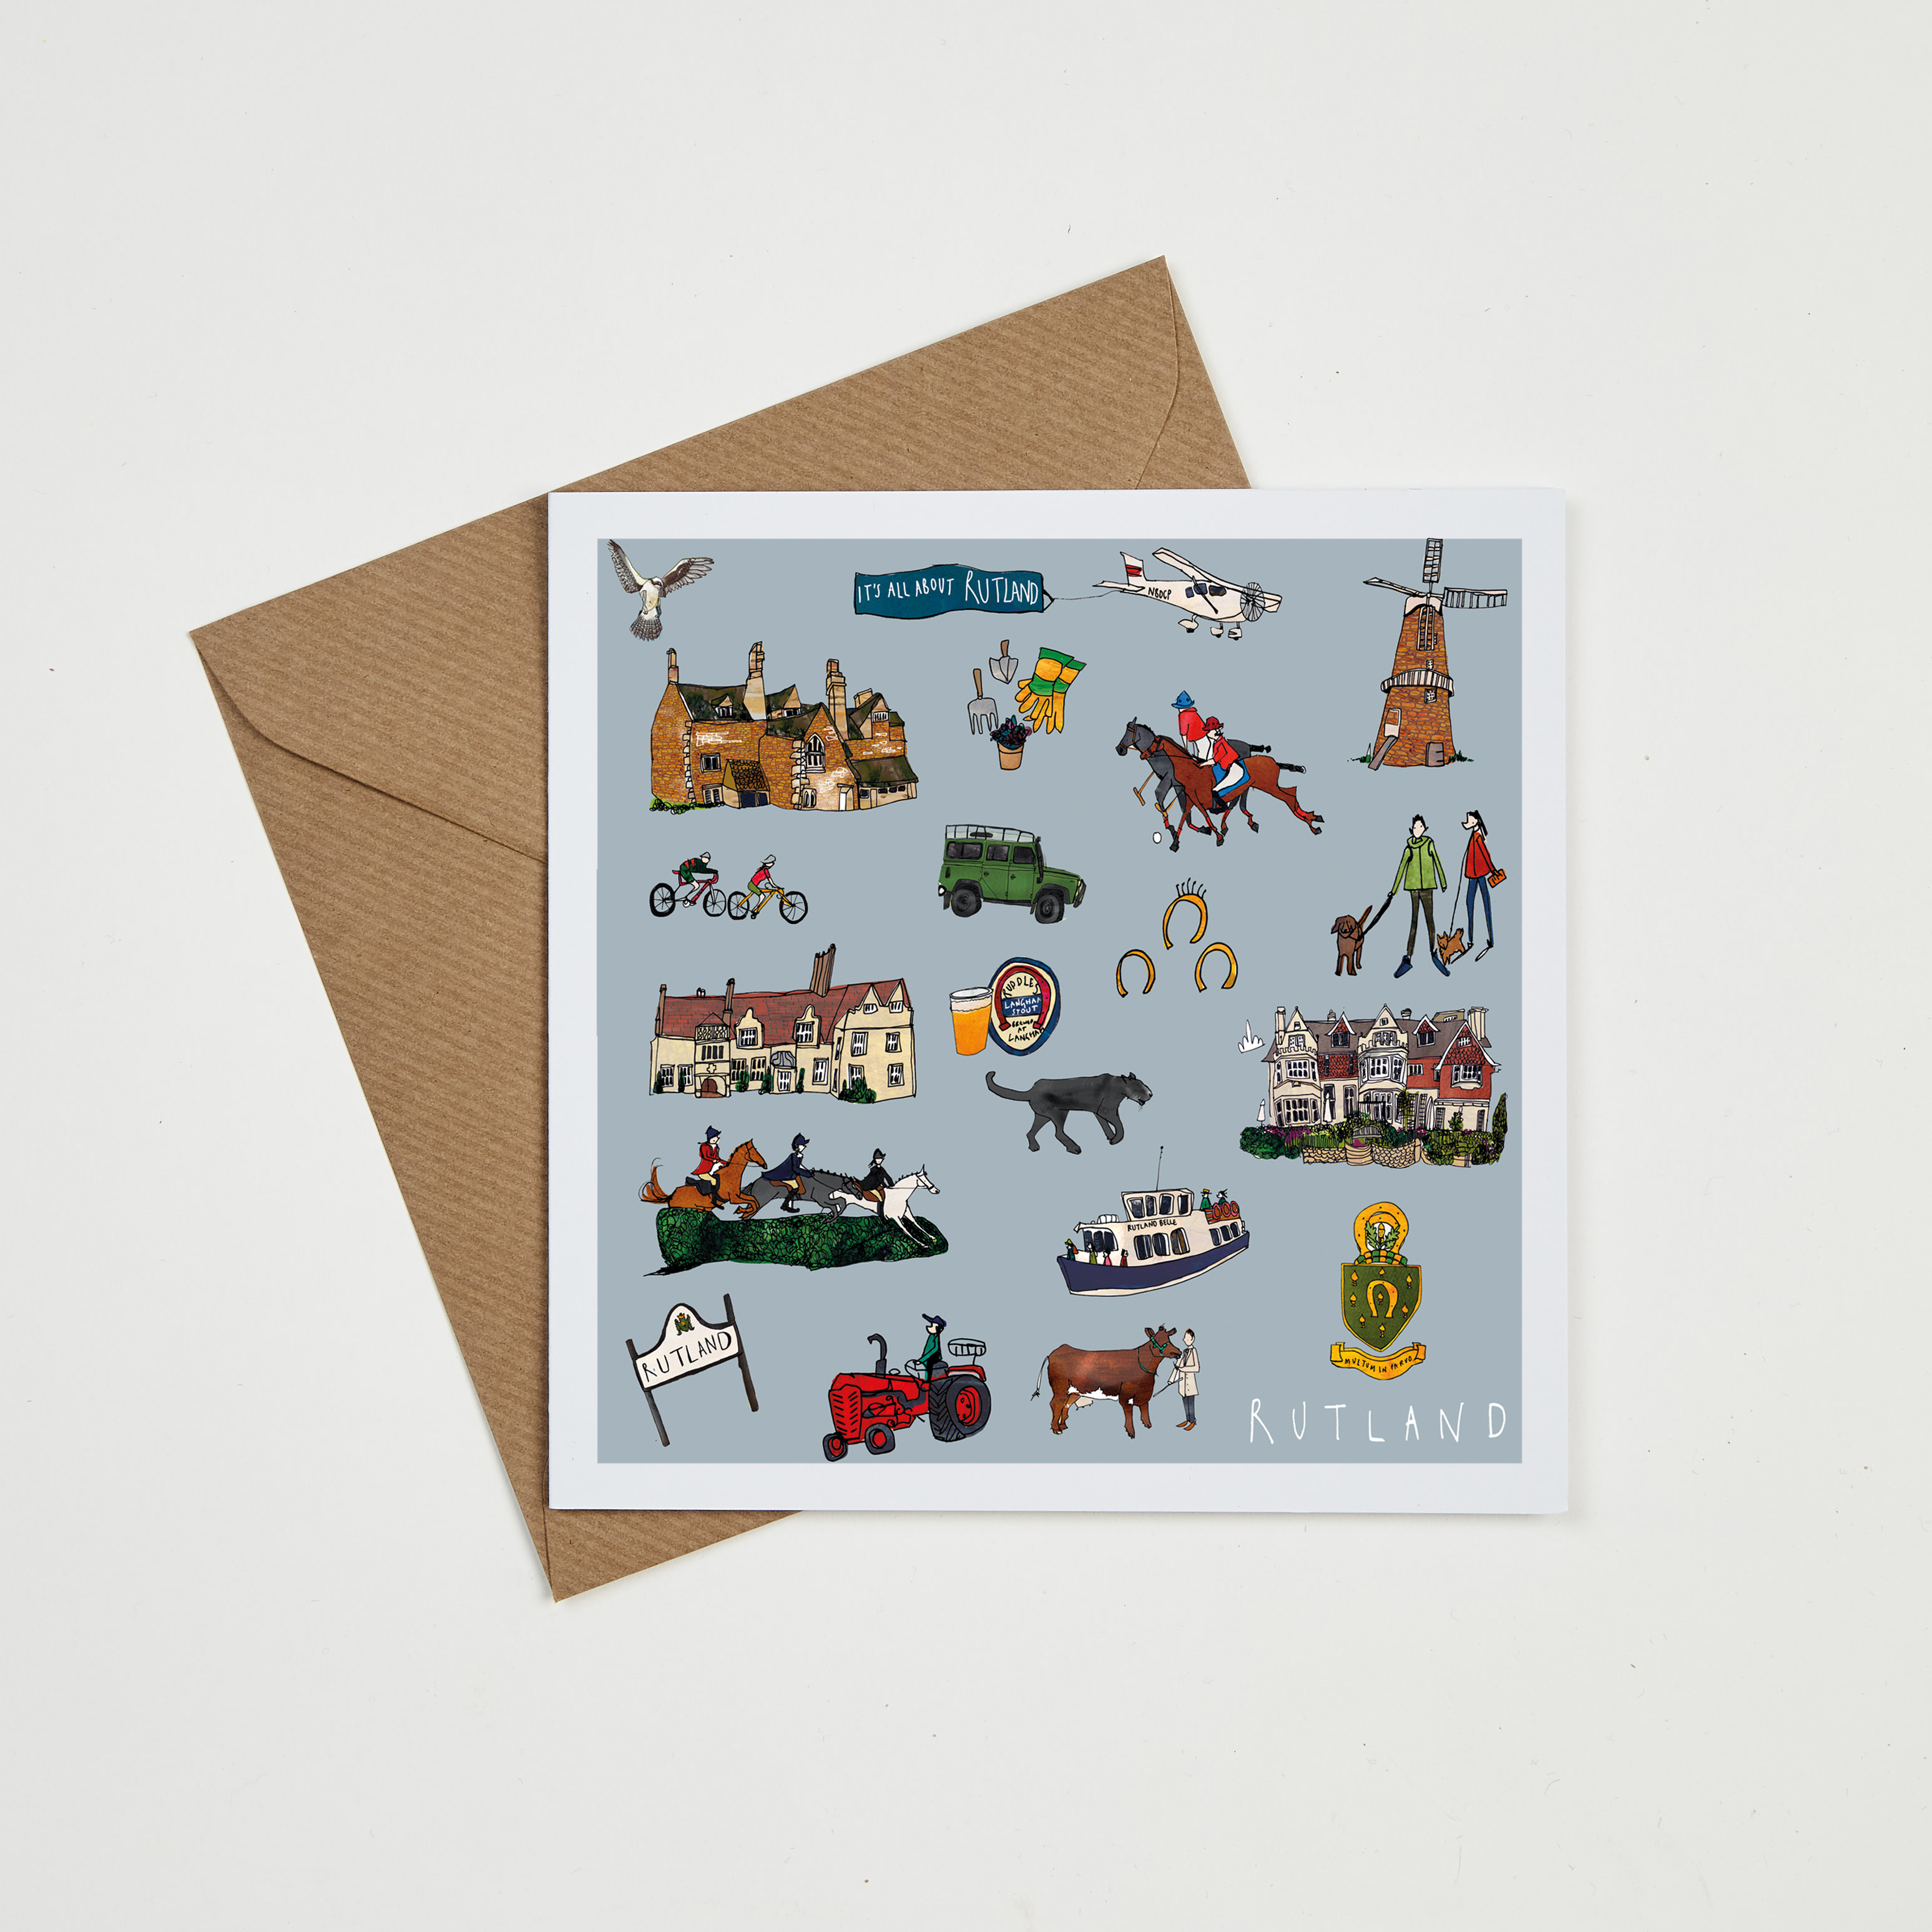 Rutland Greeting Card By Katie Cardew Illustrations